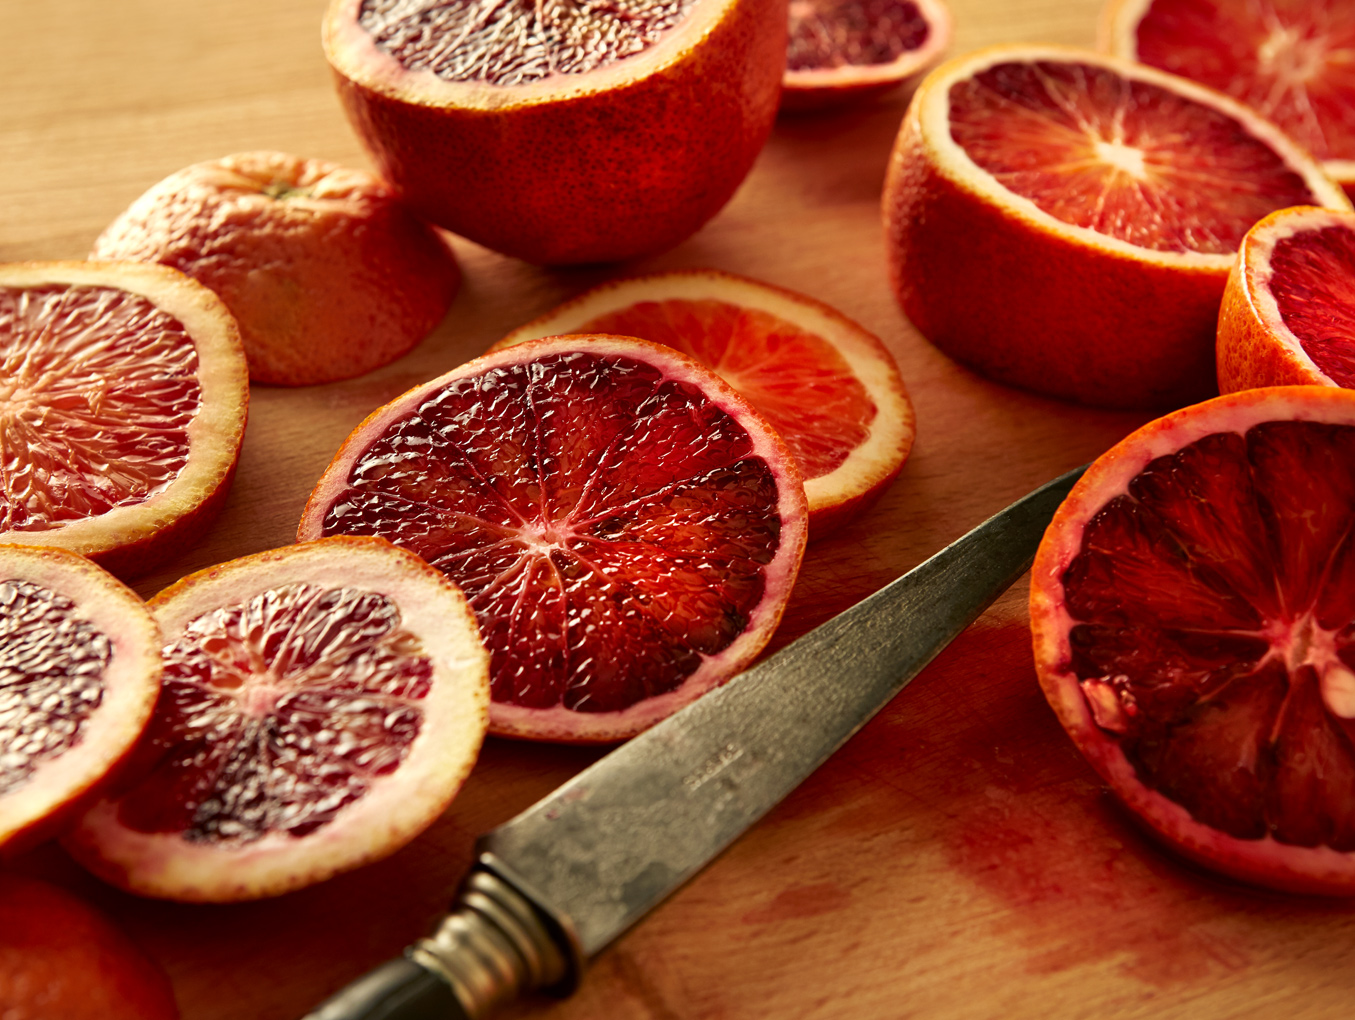 Sliced-Blood-Oranges-554_Cropped-apf